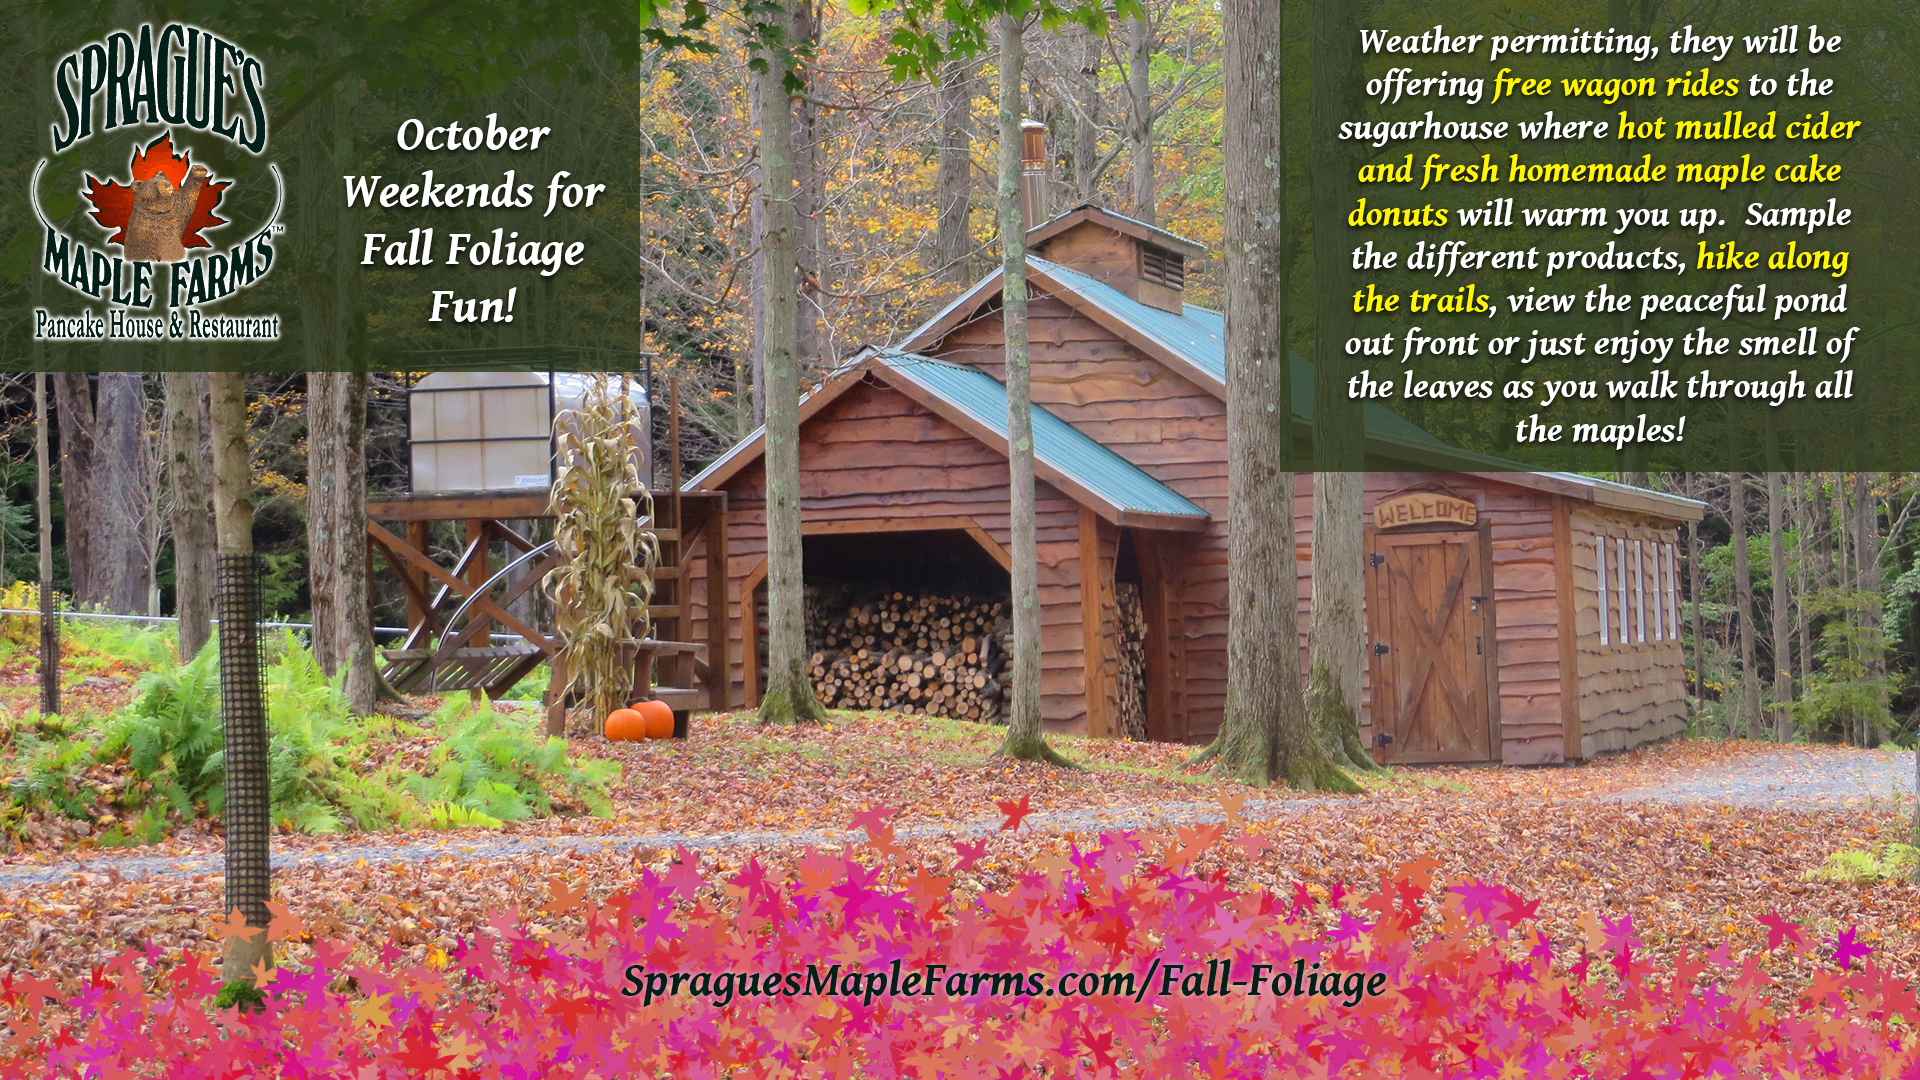 Sprague's Maple Farms, Pancake House & Restaurant Fall Foliage Weekends!